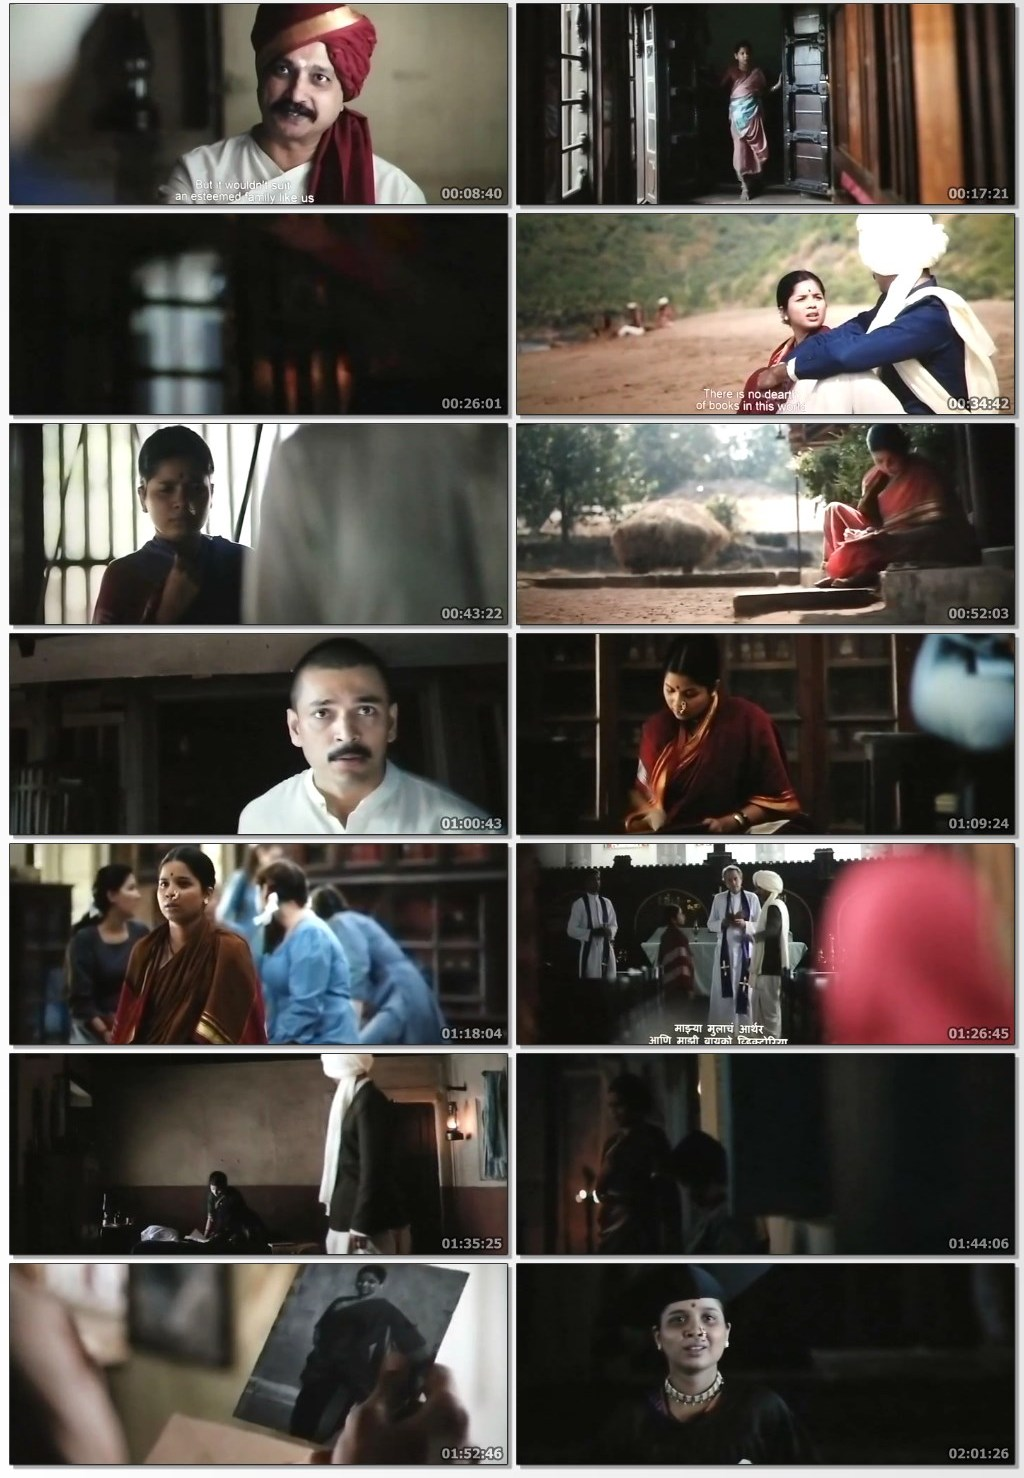 anandi gopal movie download mp4, anandi gopal movie download 480p, anandi gopal movie download 720p, anandi gopal movie download 300mb